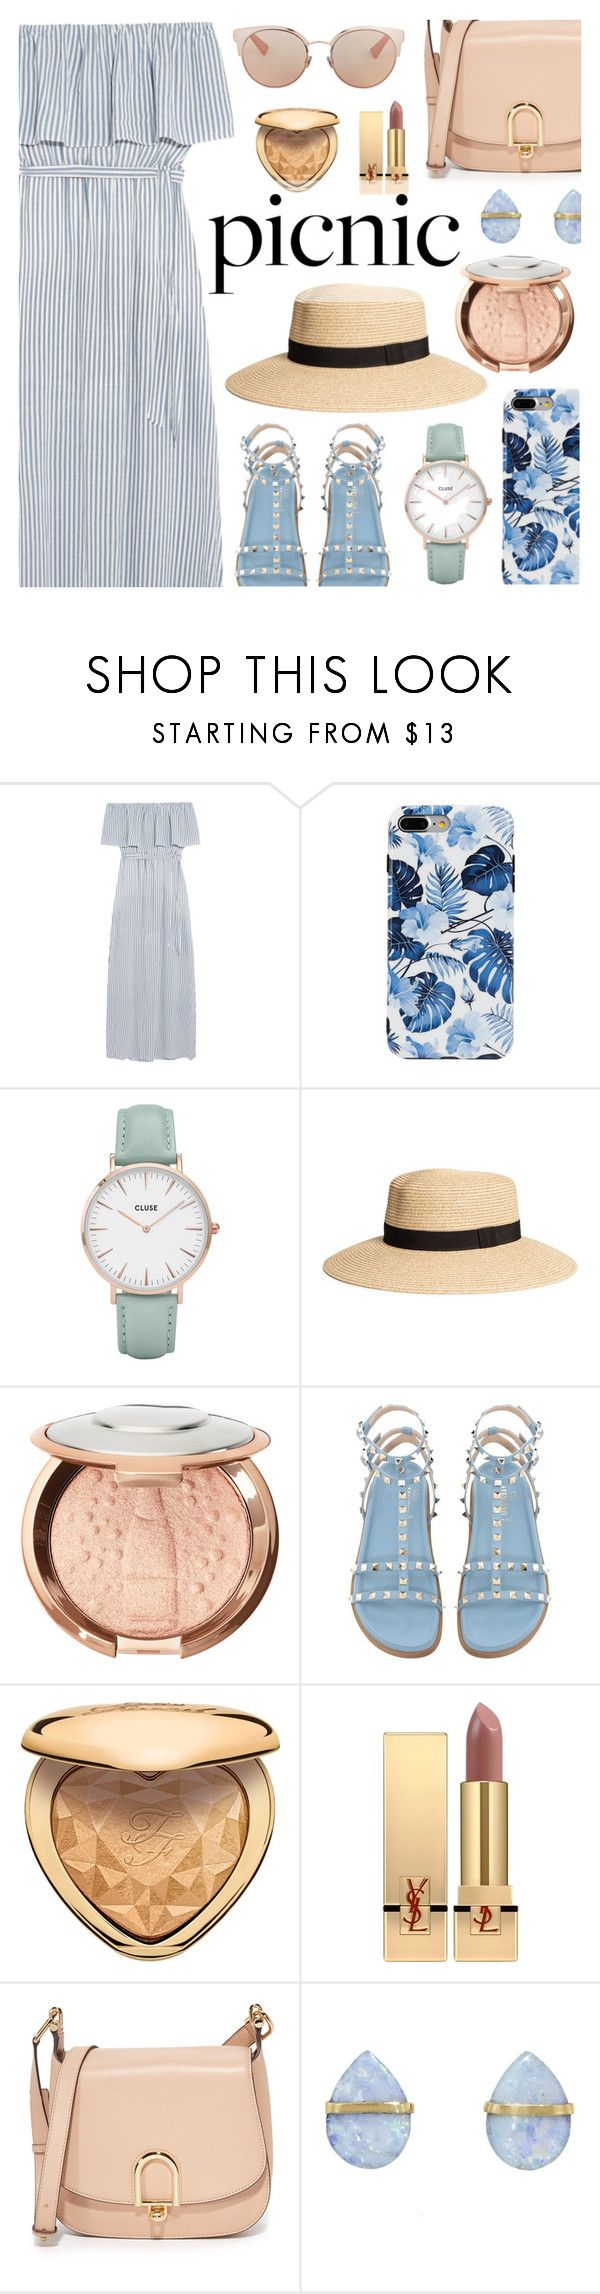 Picnic in the Park by dora04 on Polyvore featuring Alice + Olivia, MICHAEL Michael Kors, Melissa Joy Manning, CLUSE, Christian Dior, Sephora Collection, Yves Saint Laurent, Too Faced Cosmetics and picnic